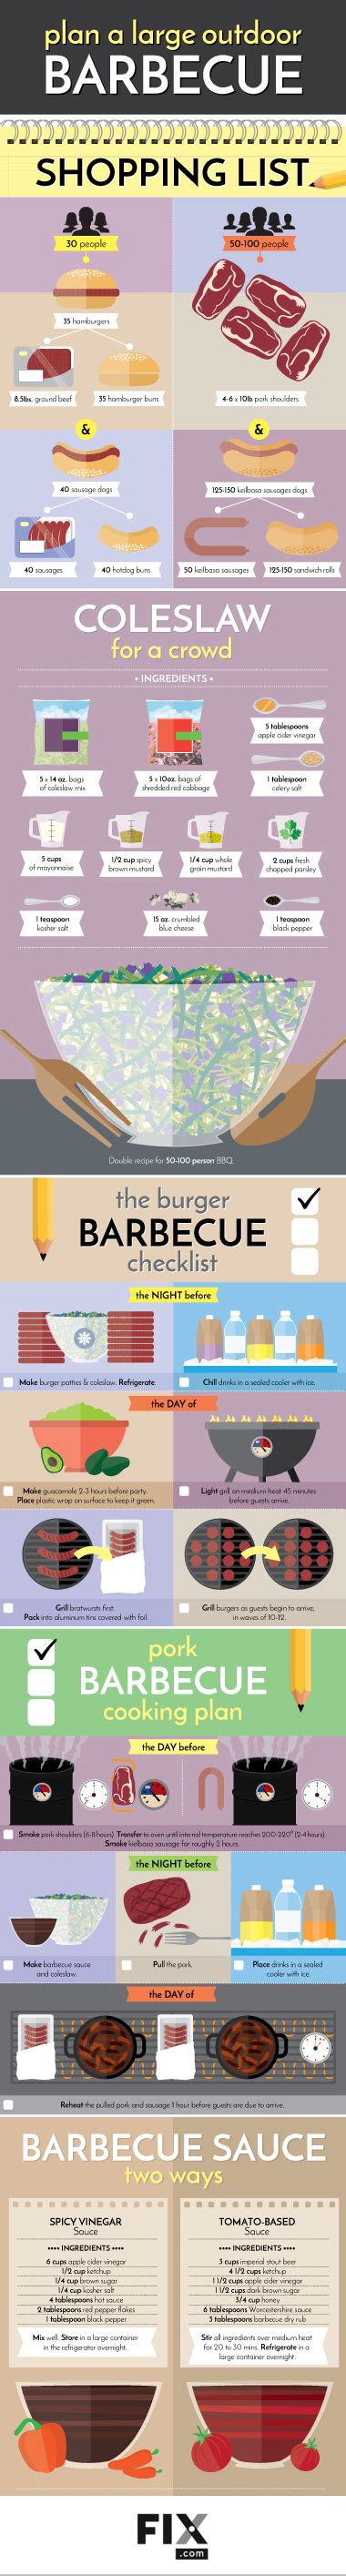 how to plan a backyard party planning a large bbq cookout for a crowd fix com